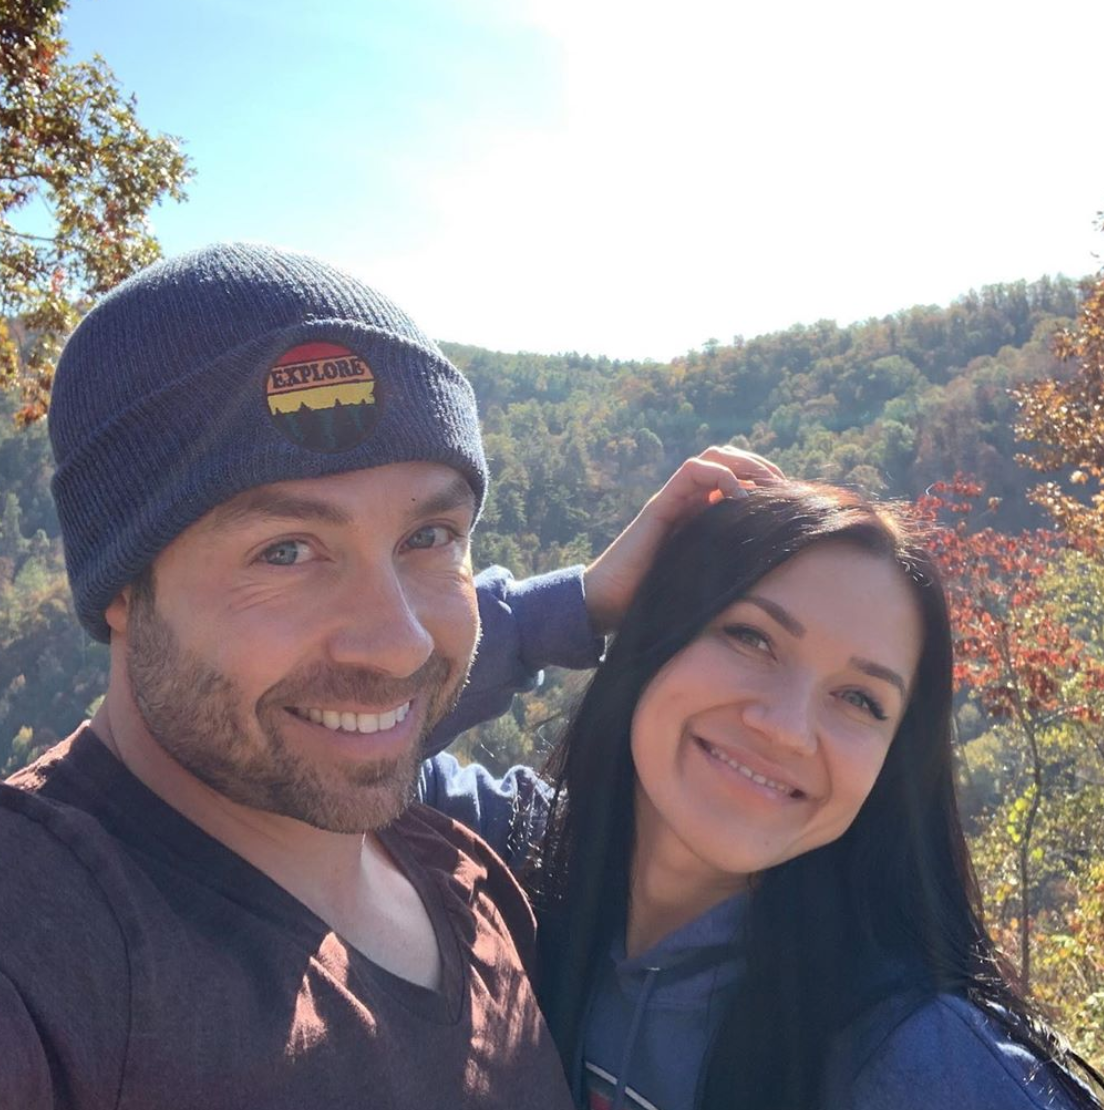 90 Day Fiance Varya Malina Reflects on Journey With Geoffrey and Leaves Status a Mystery